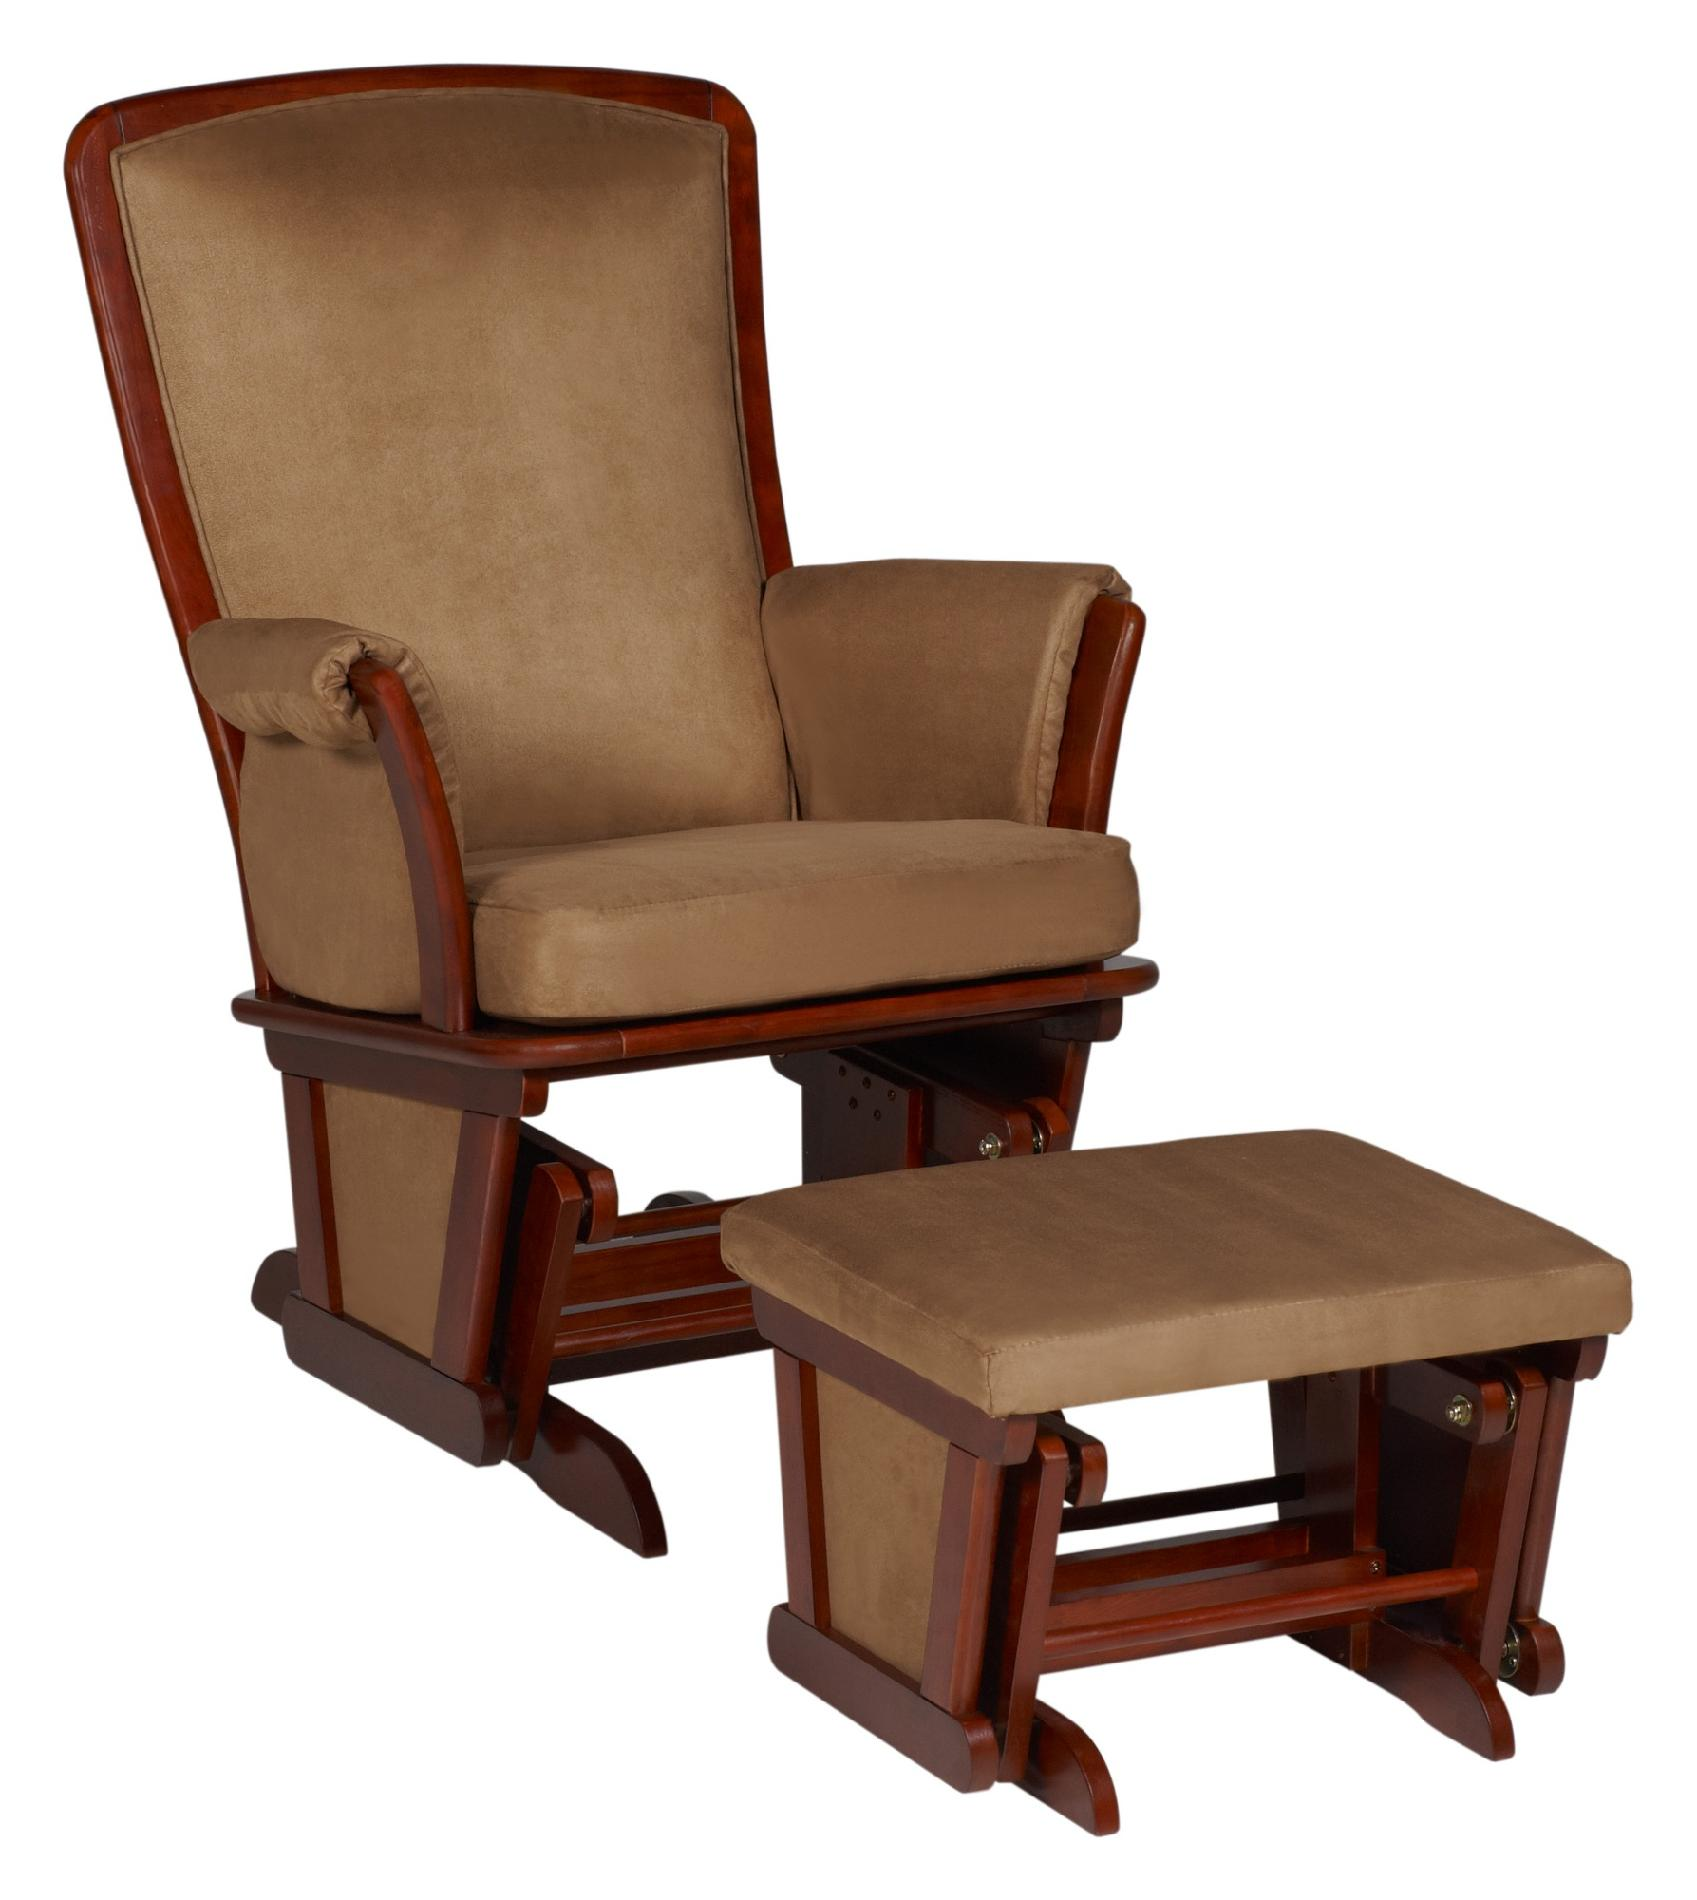 kids upholstered rocking chair contemporary lounge delta children glider and ottoman vintage